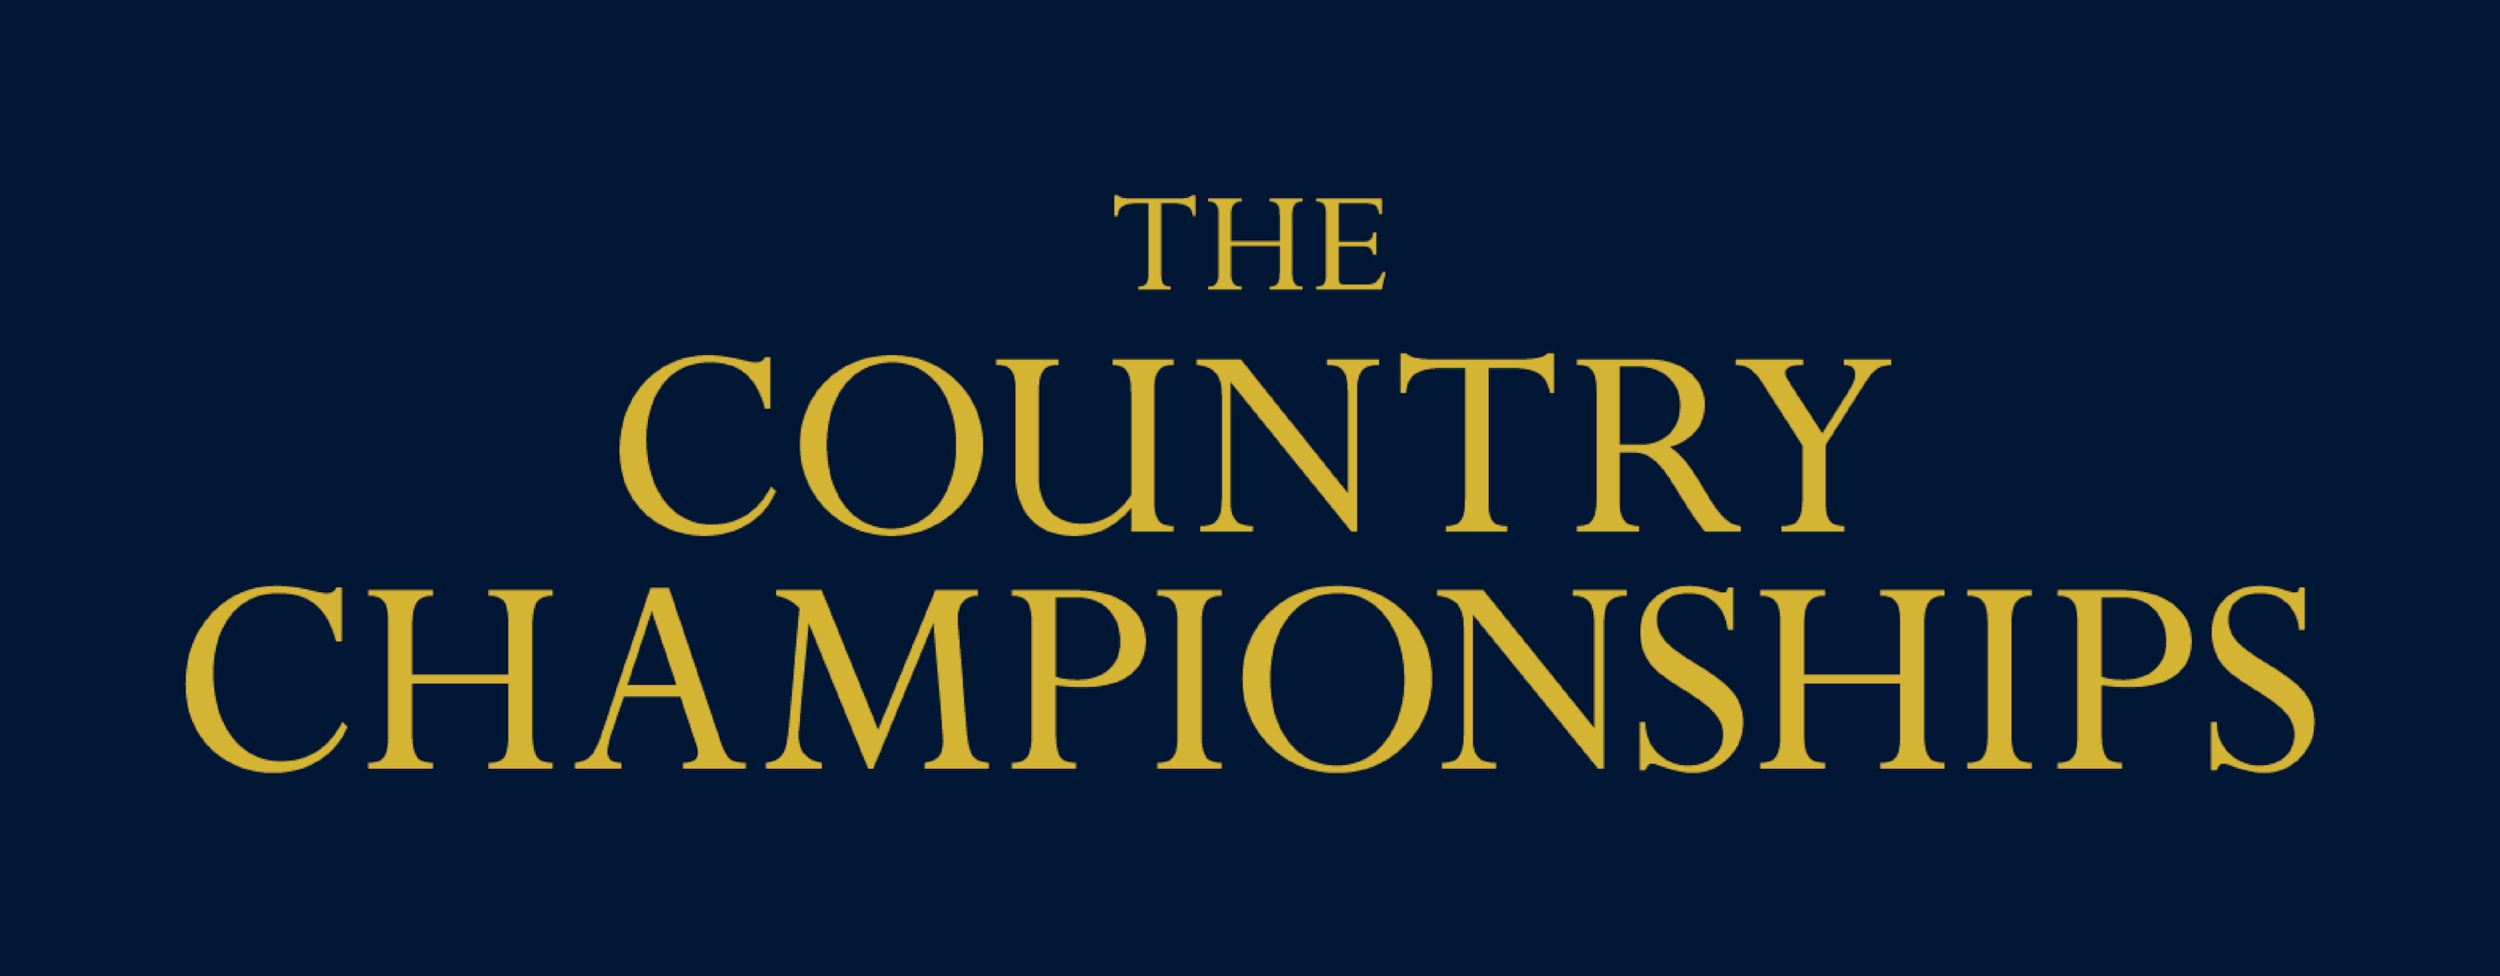 Country+Champs+for+email.jpg